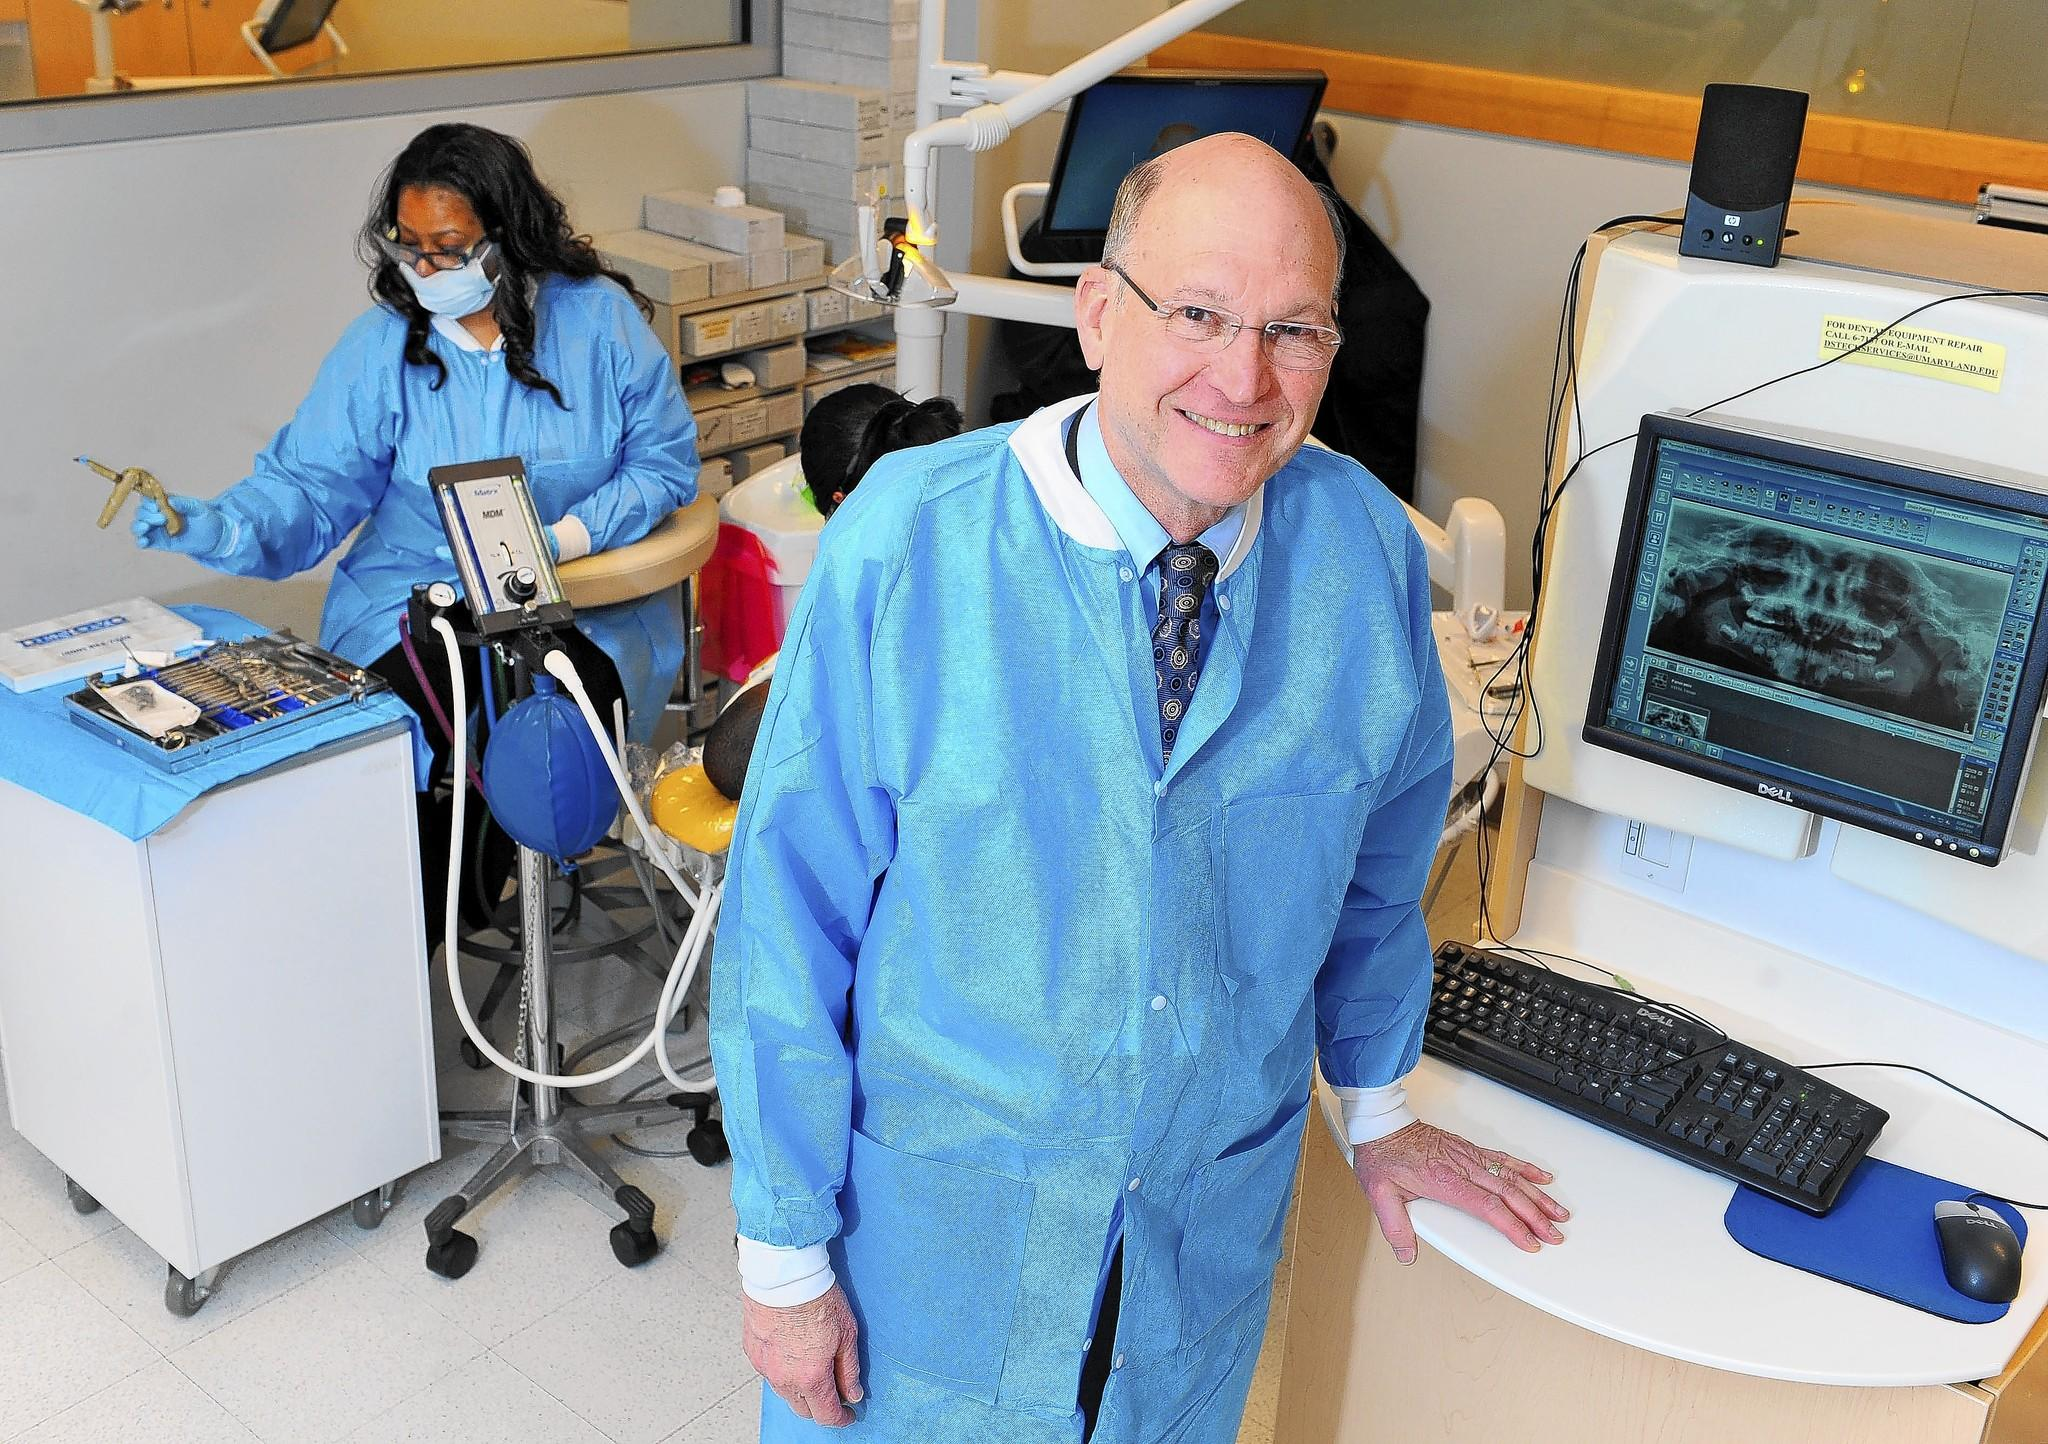 Dr. Norman Tinanoff is a professor of pediatric dentistry at University of Maryland.